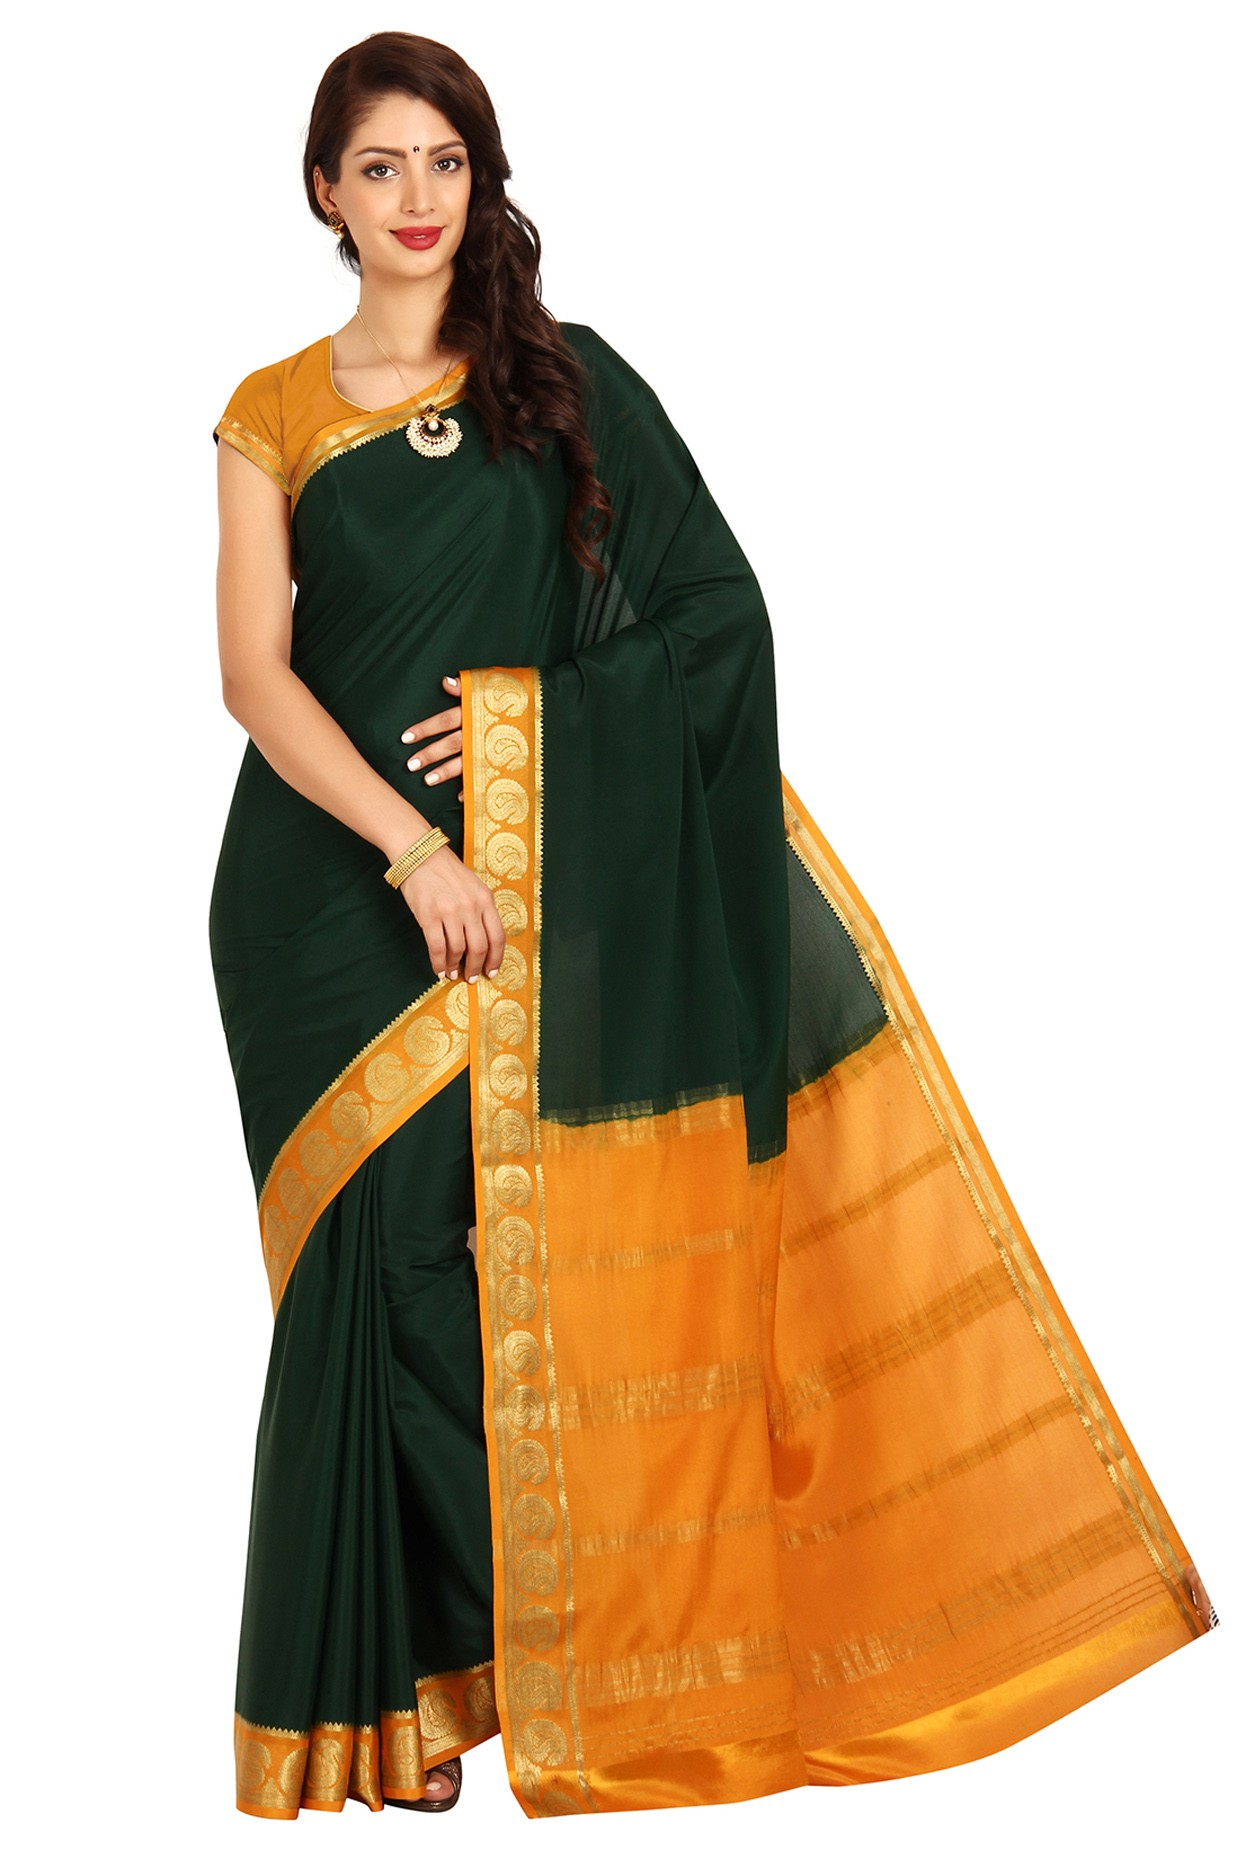 4430c1c5429 100% Pure Crepe Mysore Traditional Silk Saree KC2107 BOTTLEGREEN MUSTARD - Mysore  Silk Sarees - Sarees